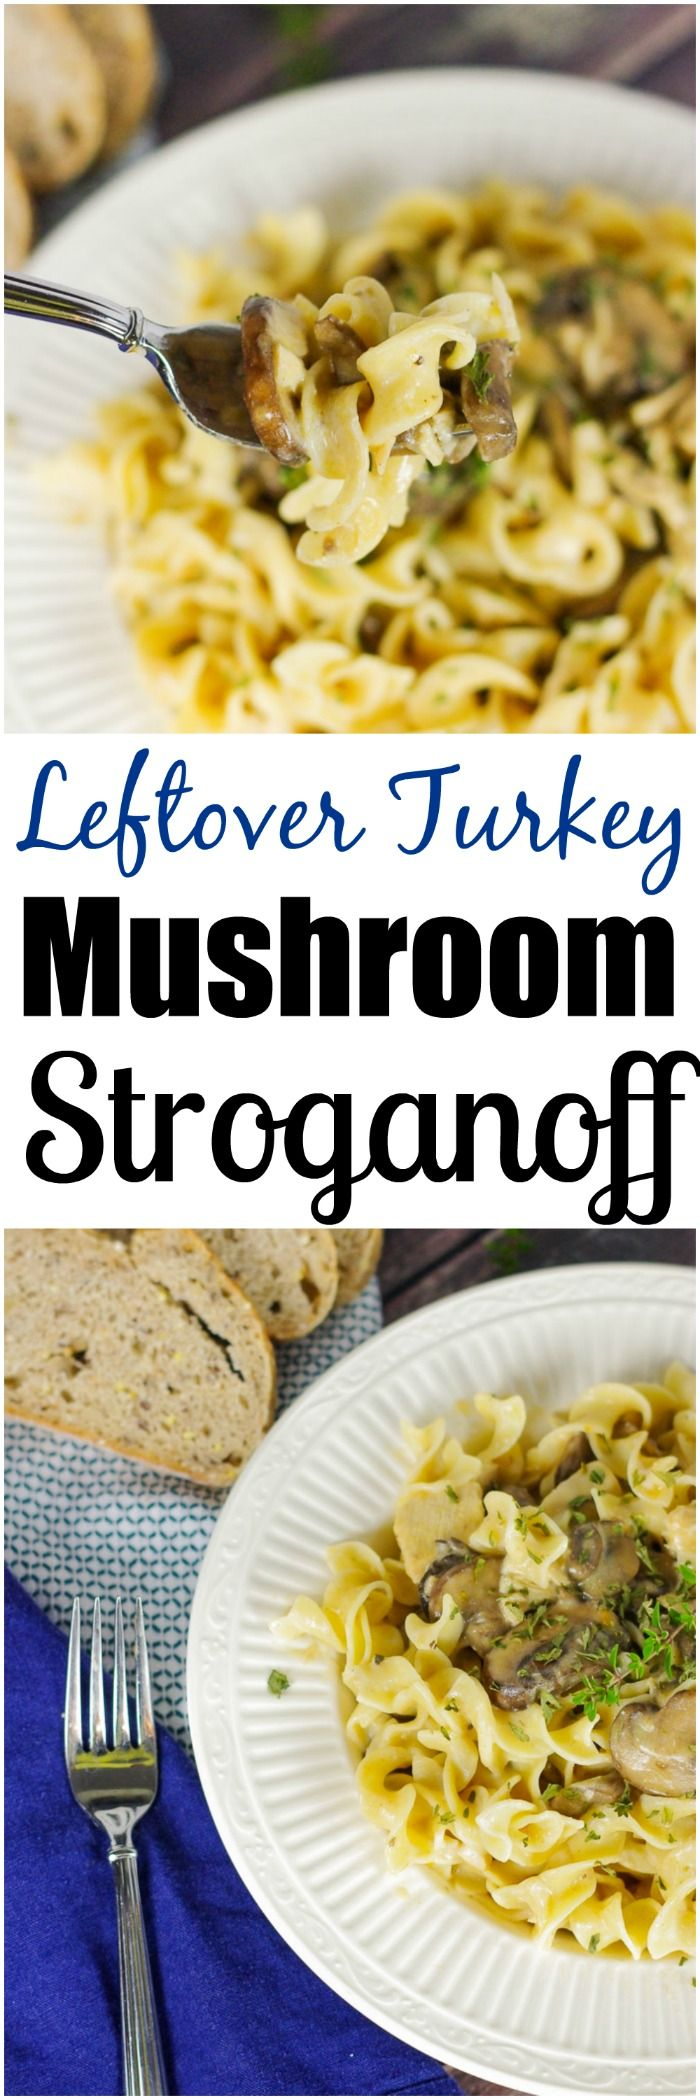 Leftover Turkey Mushroom Stroganoff | www.homeandplate.com | Make good use of leftover Thanksgiving turkey with this easy, saucy turkey mushroom stroganoff.